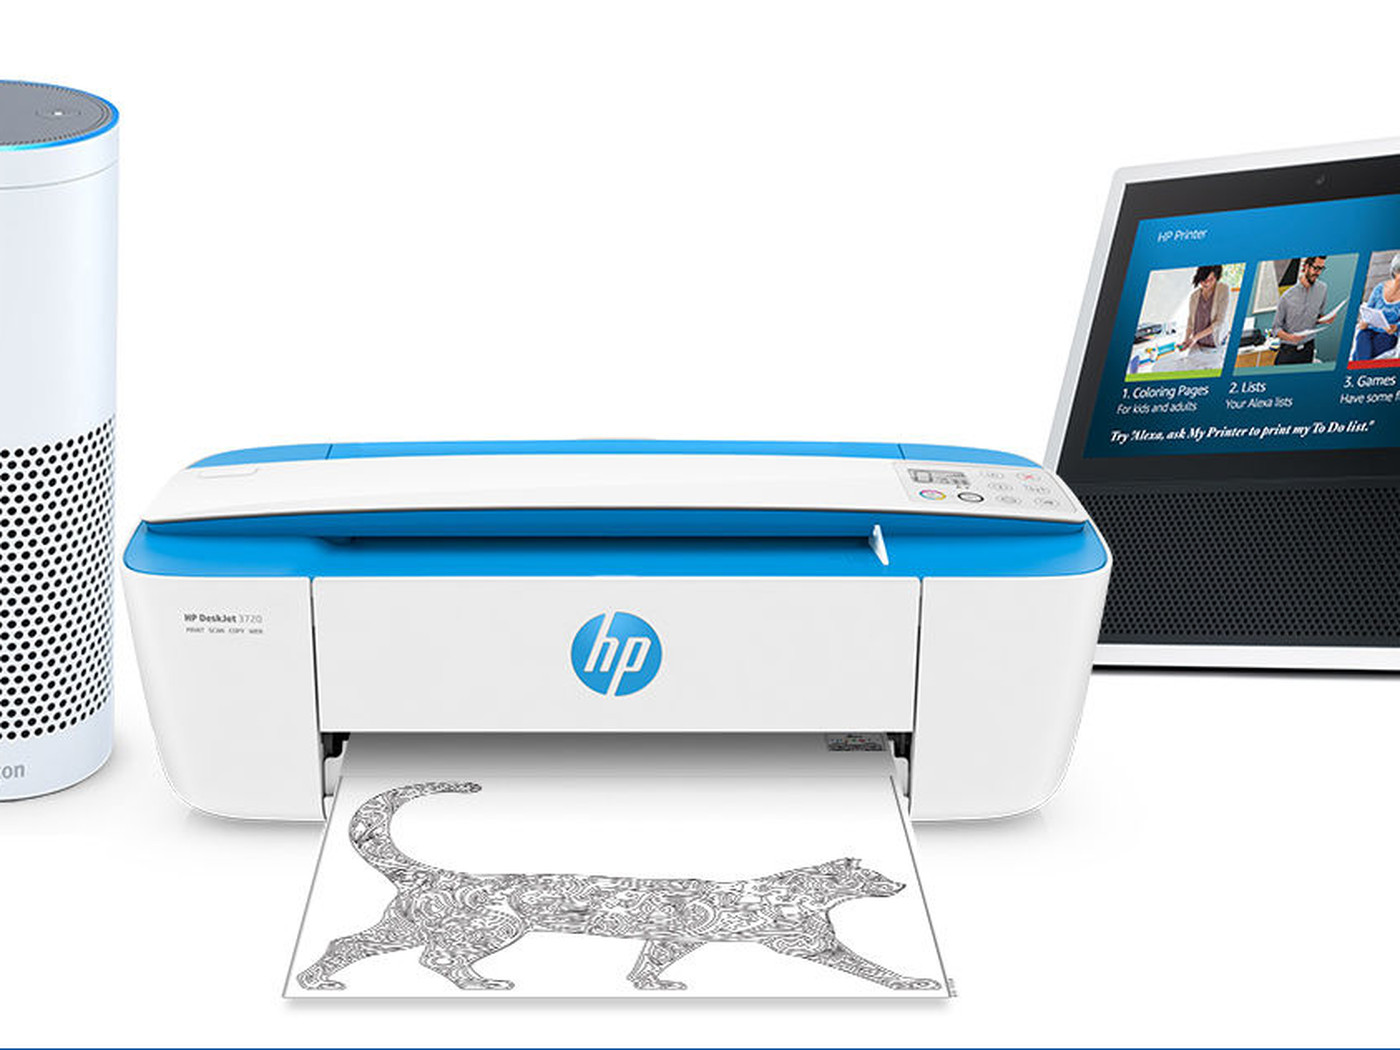 How To Fix HP Printer Light Blinking Issue?